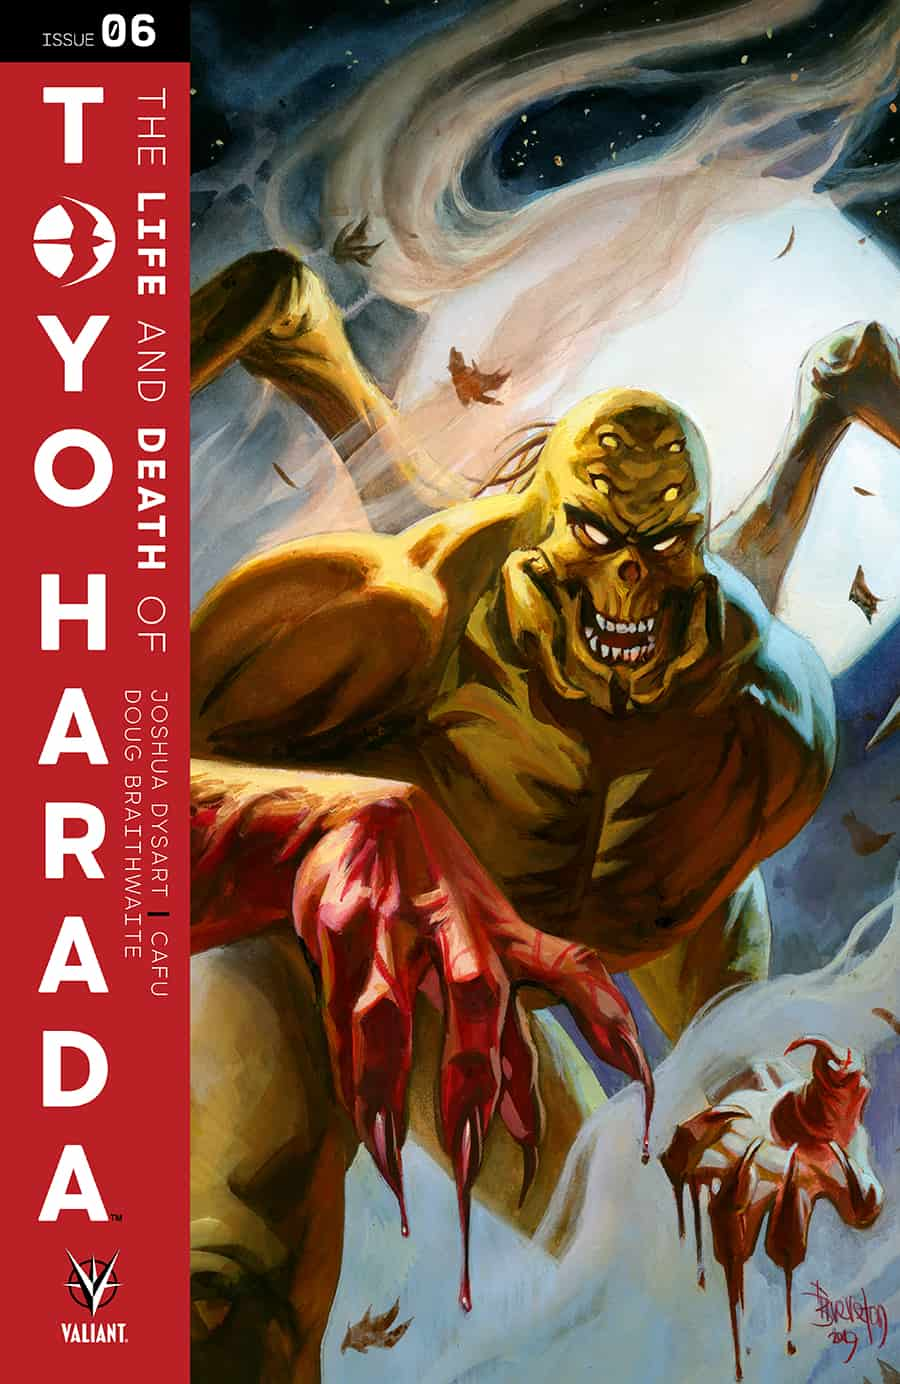 THE LIFE AND DEATH OF TOYO HARADA#6 - Cover B